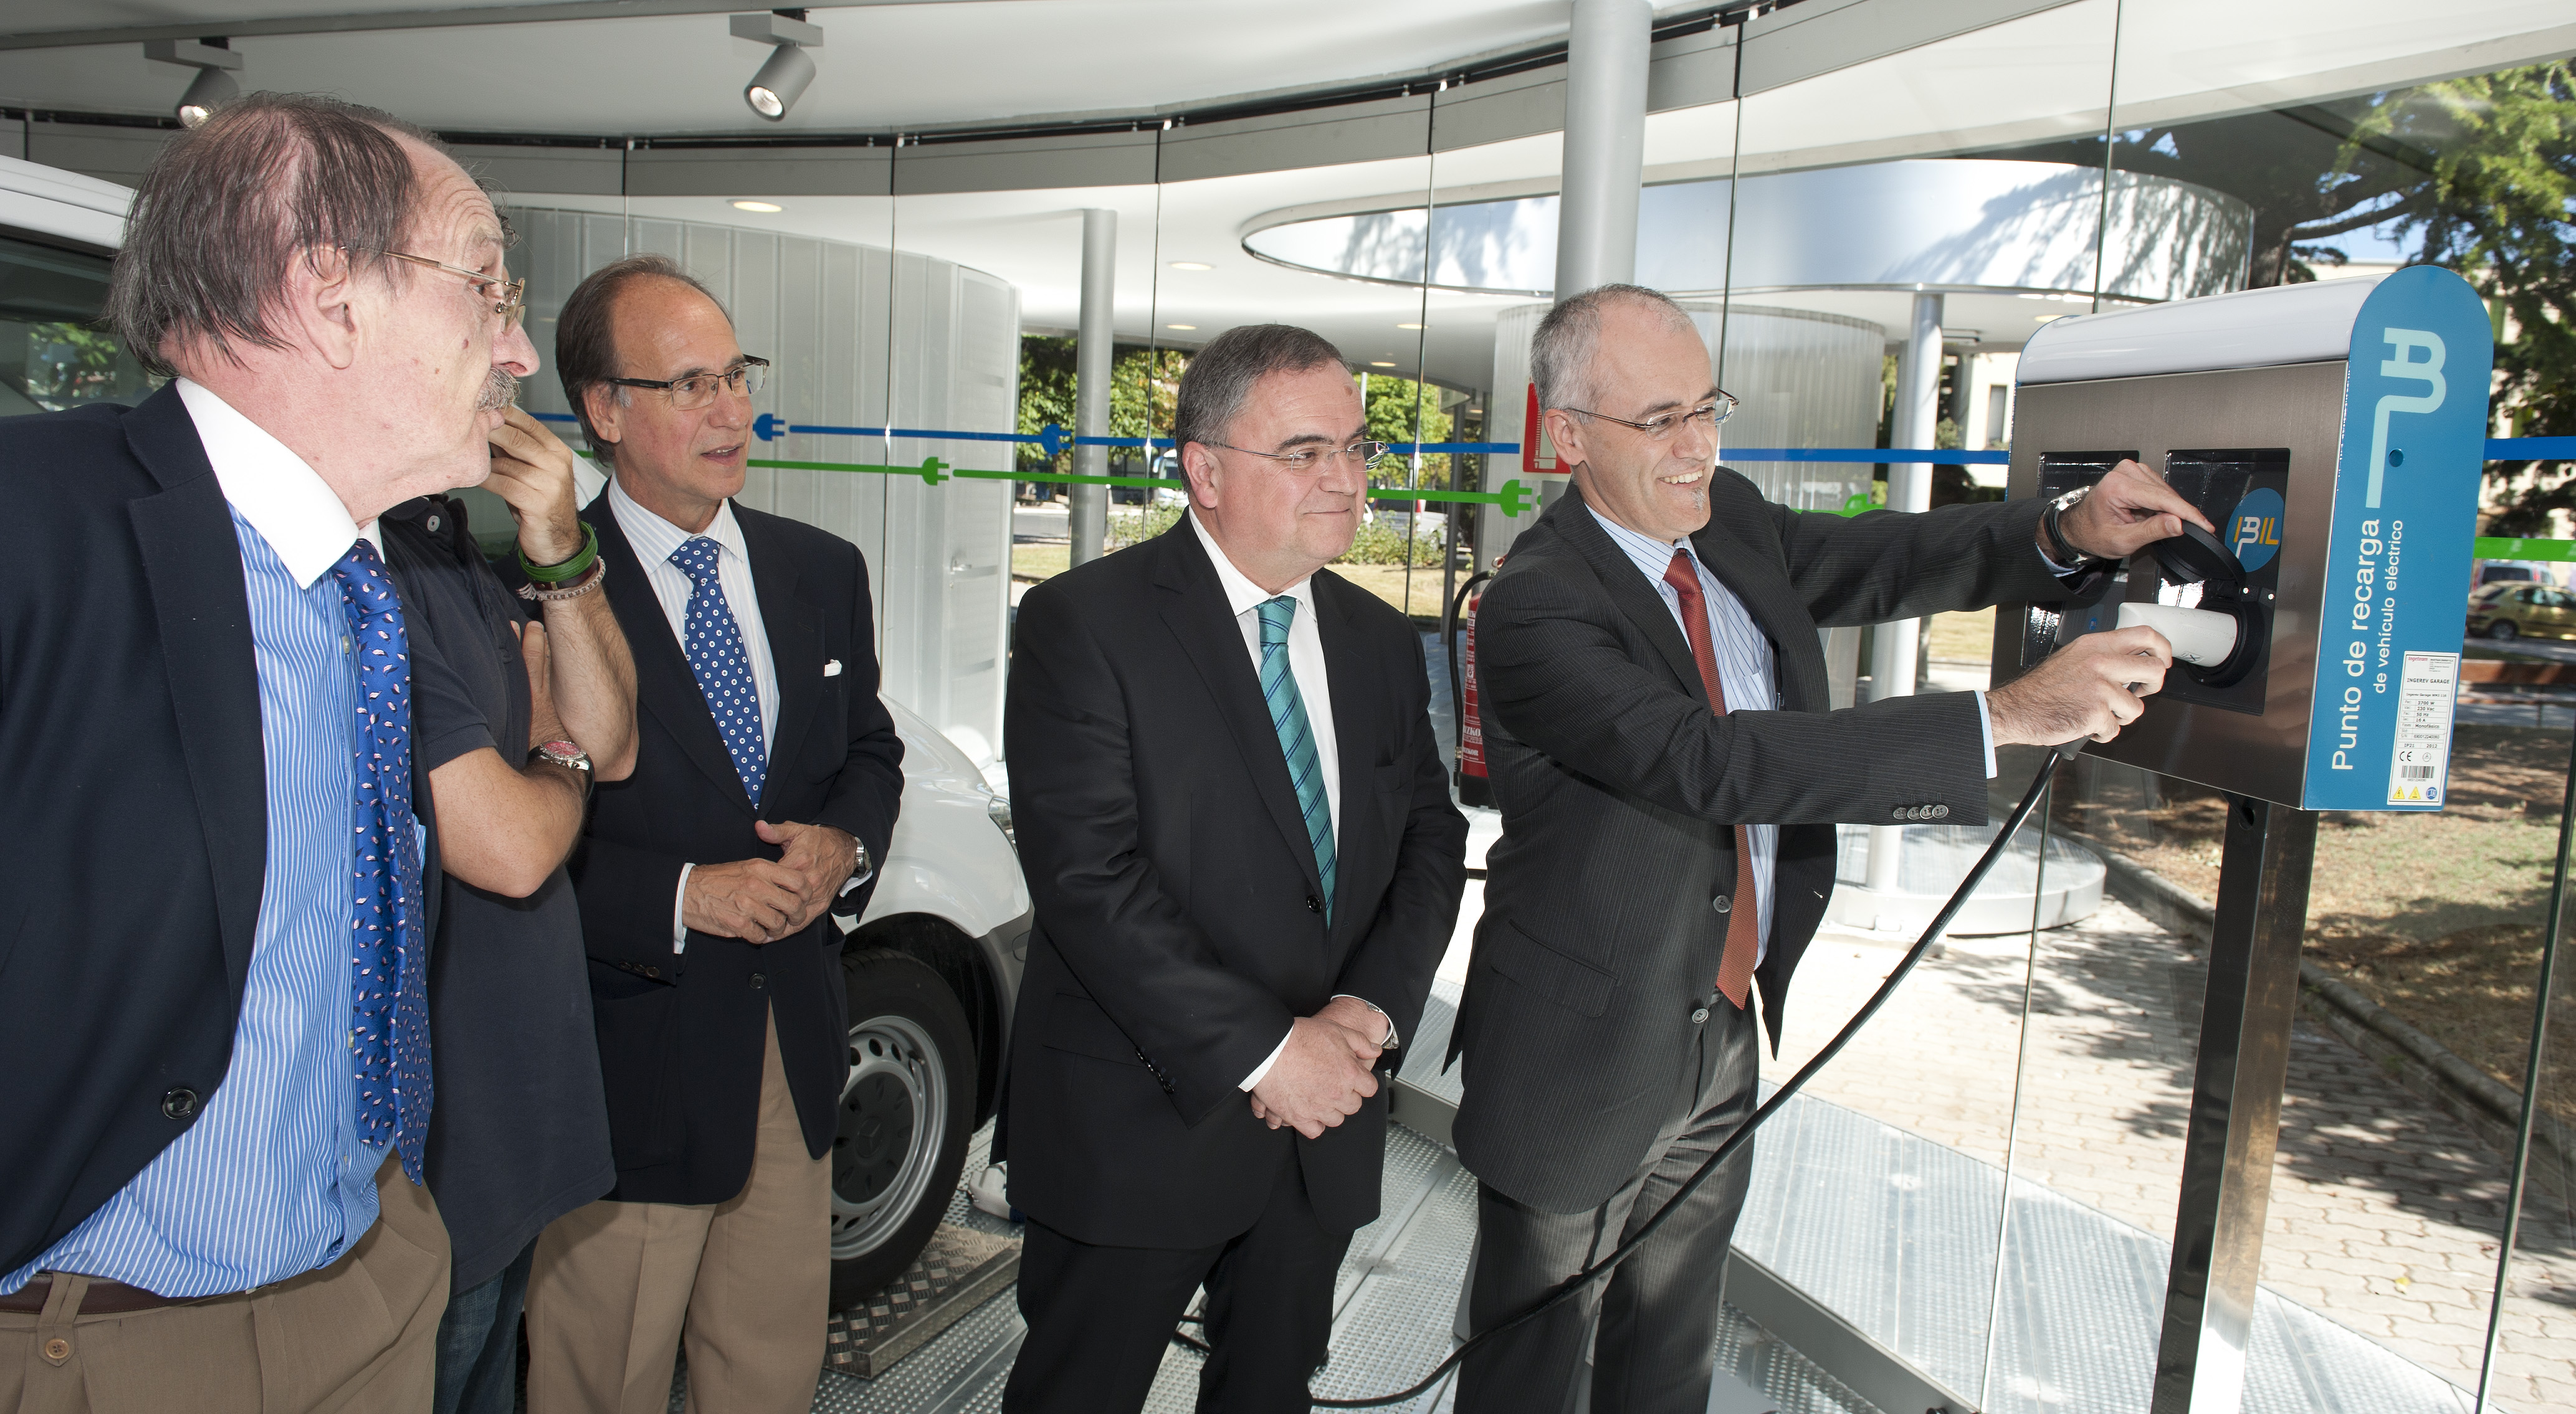 The EVE opens in Vitoria-Gasteiz the first Electric Mobility Centre of Spain